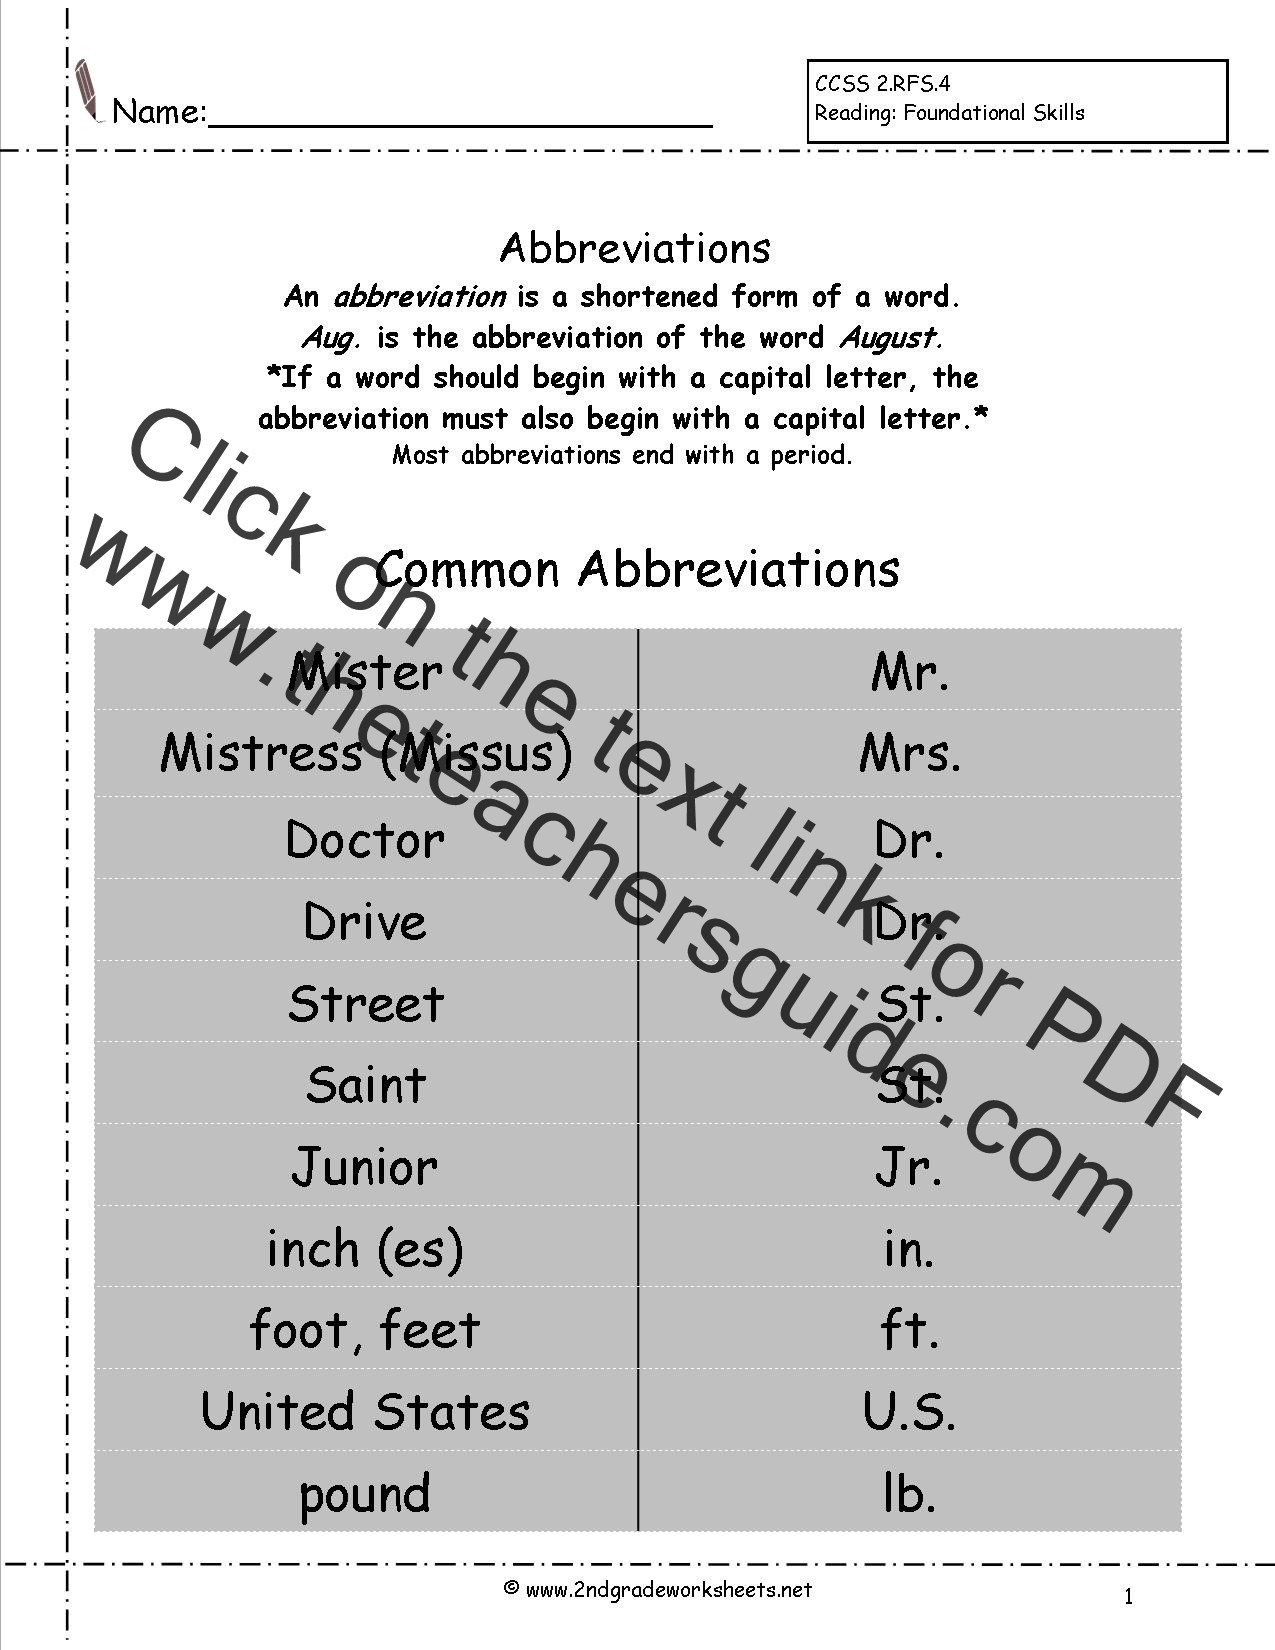 Grammar Worksheets 2nd Grade Printable Free Language Grammar Worksheets and Printouts